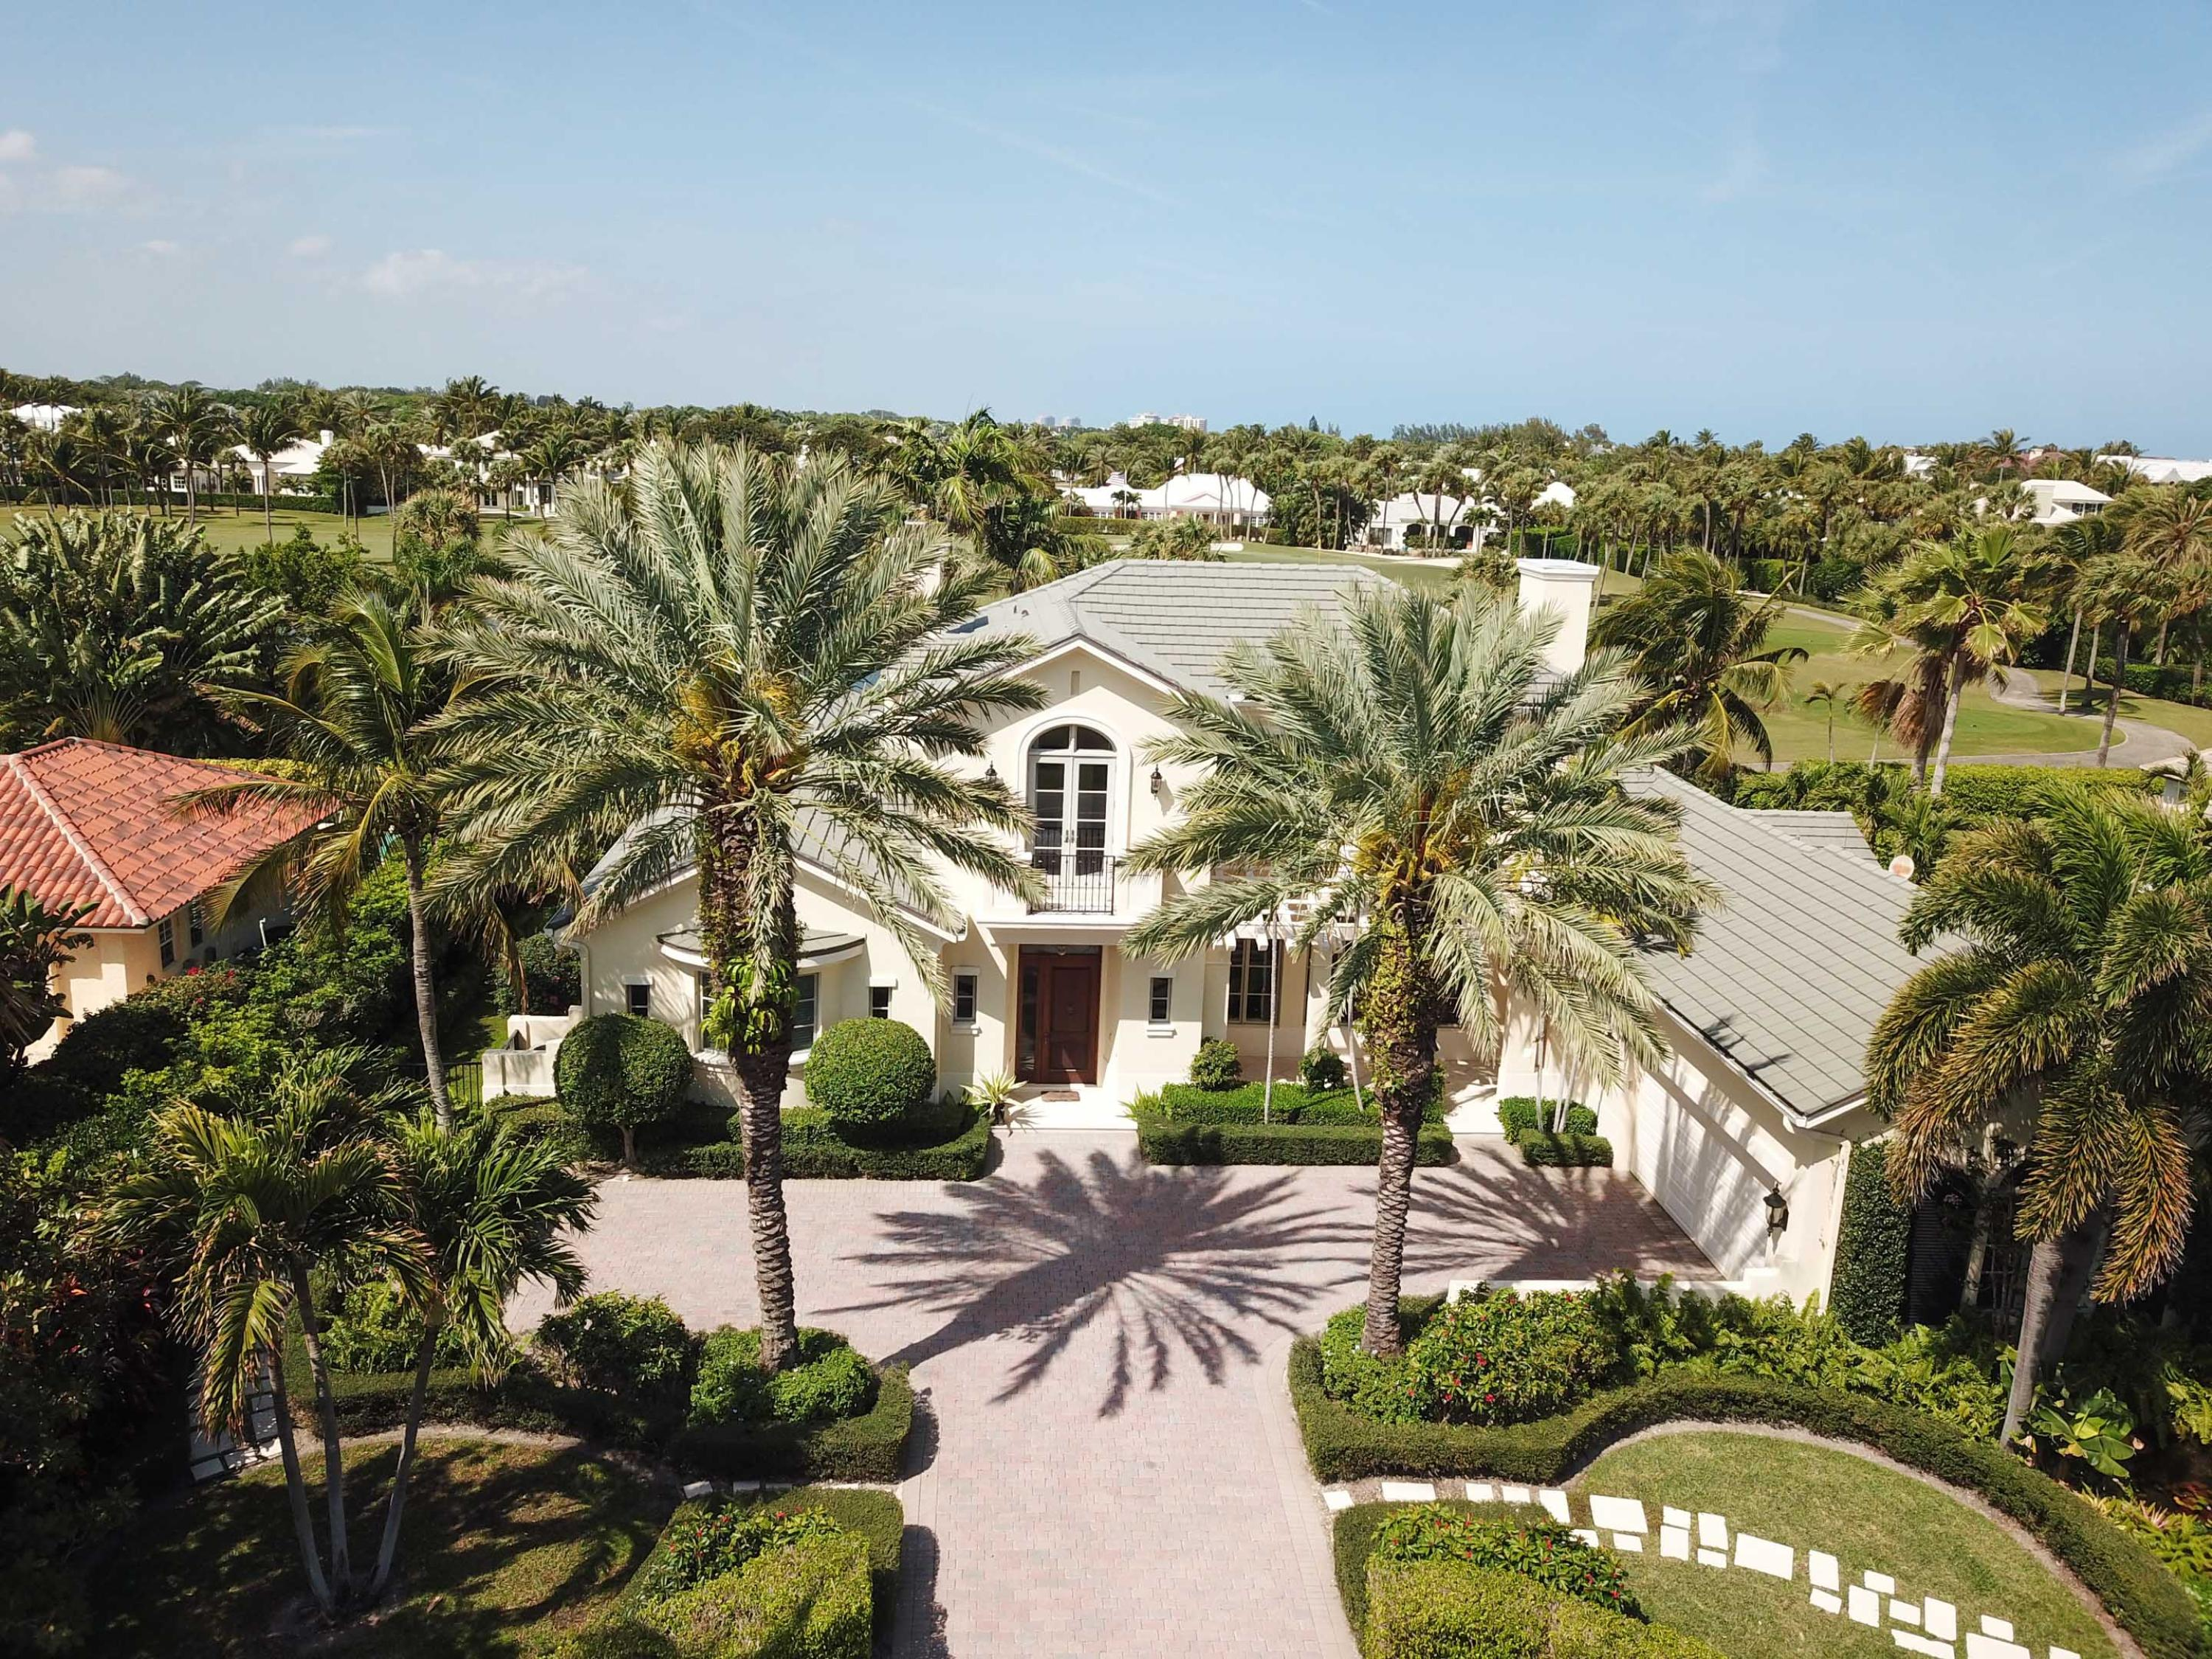 New Home for sale at 817 Lake House Drive in North Palm Beach